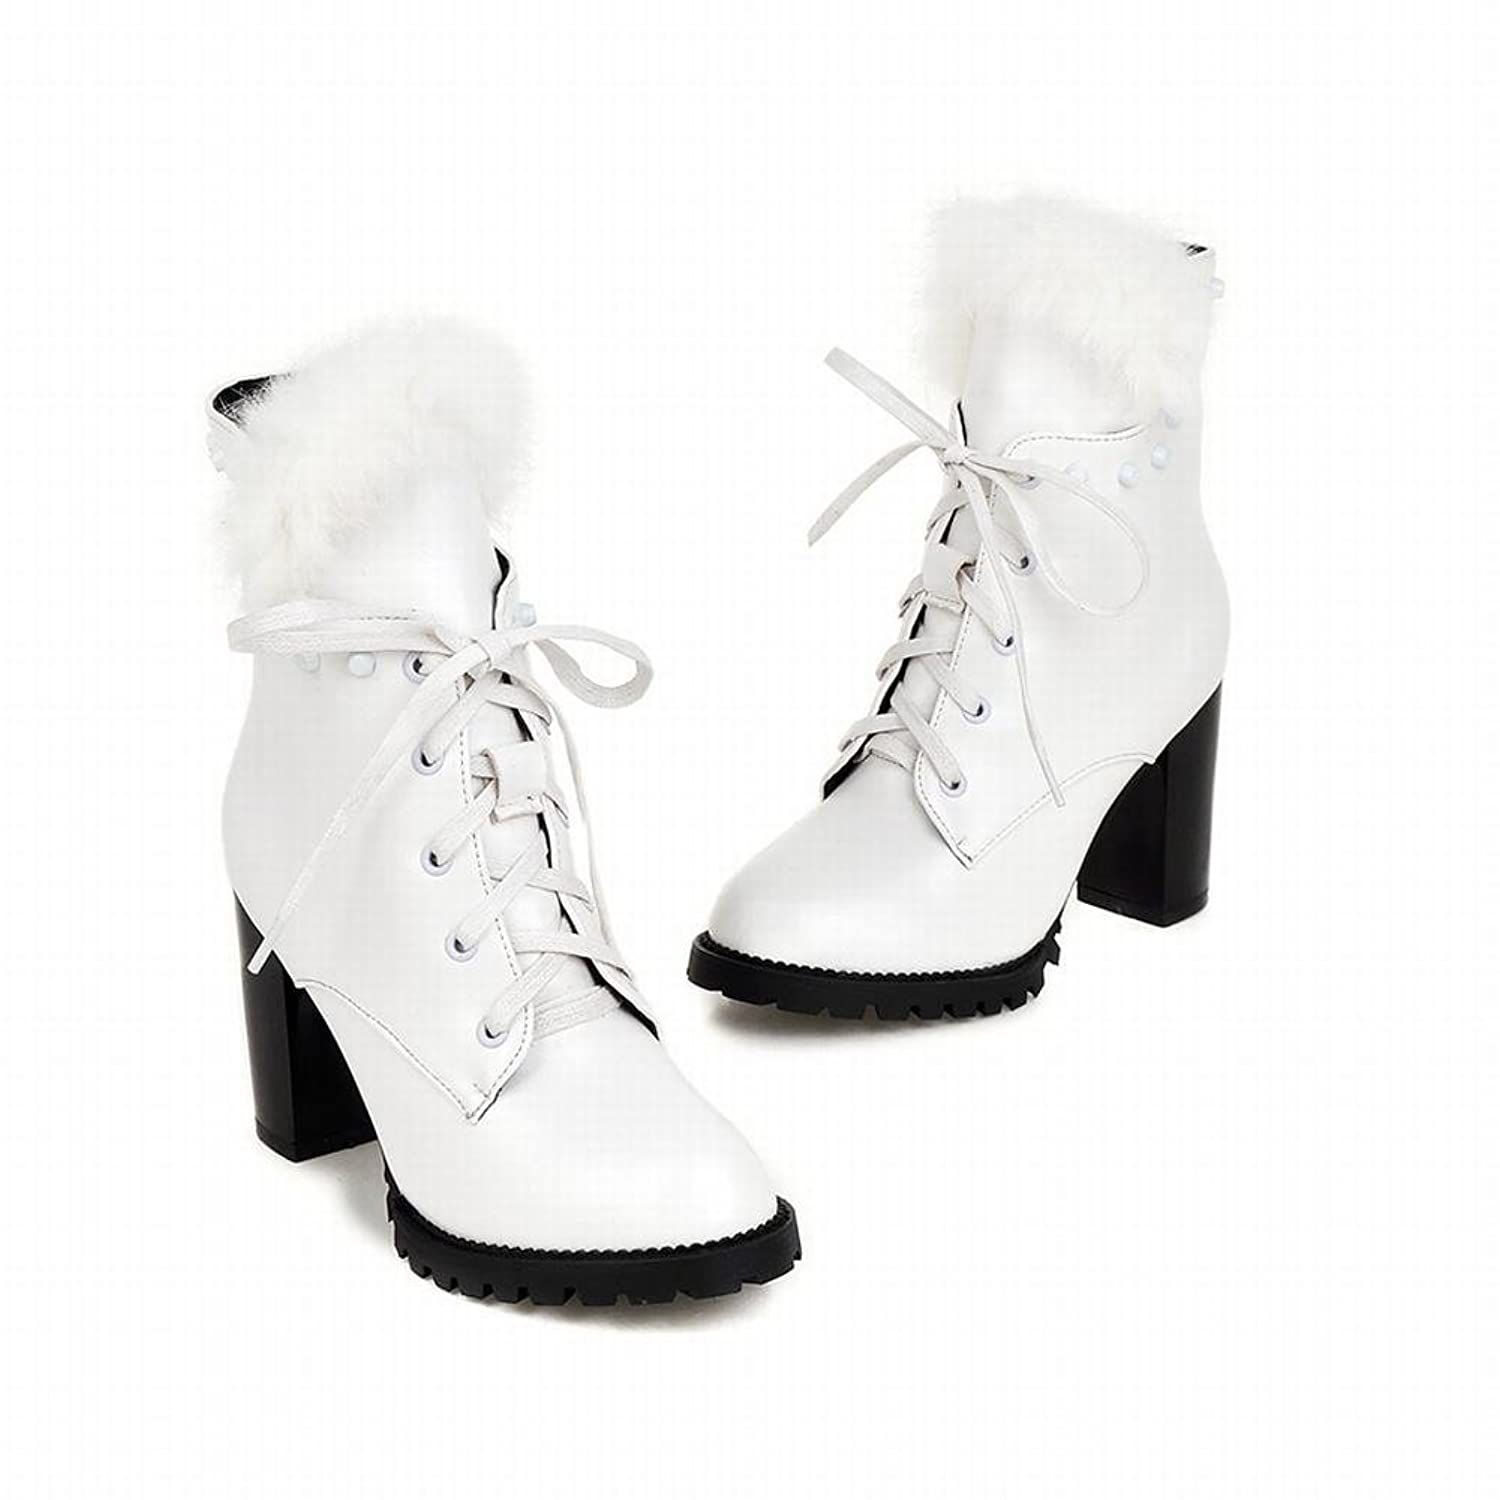 Vintage Style Boots Retro Vintage Winter Snow Lace up Studded Cony Hair Rivet High Heel Short Boots  AT vintagedancer.com